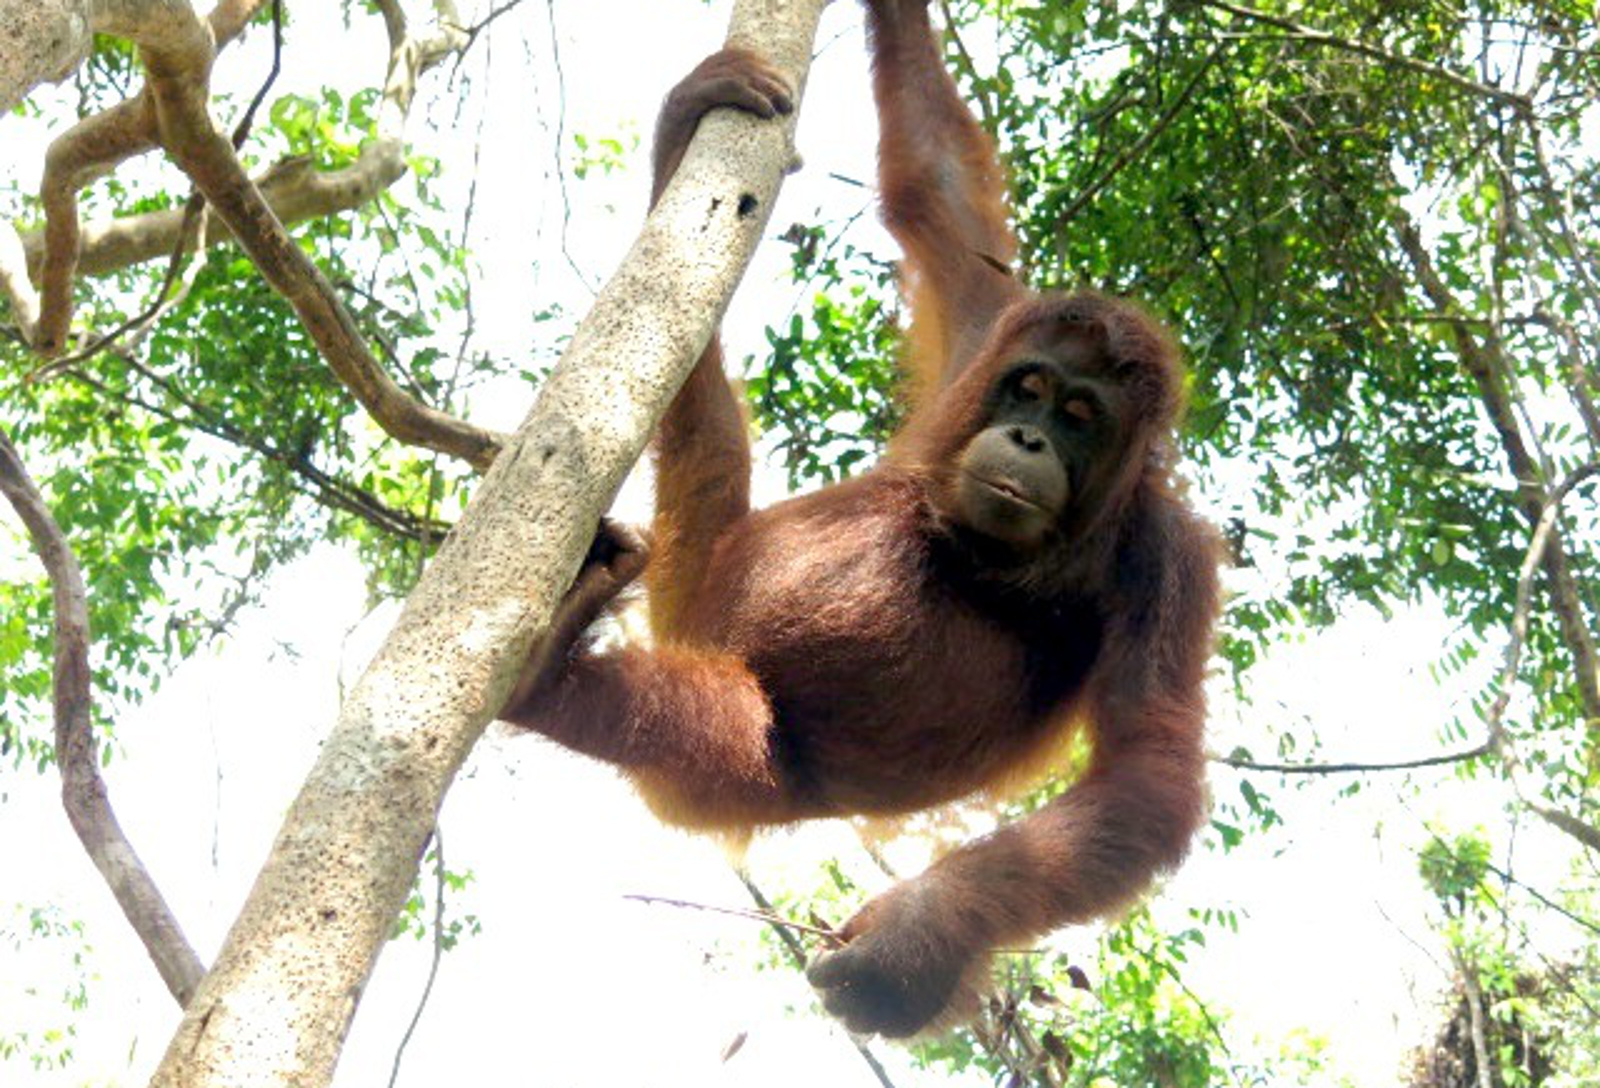 After Being Tortured by Villagers, Rescued Orphaned Orangutan Gets Second Chance at Life in the Wild